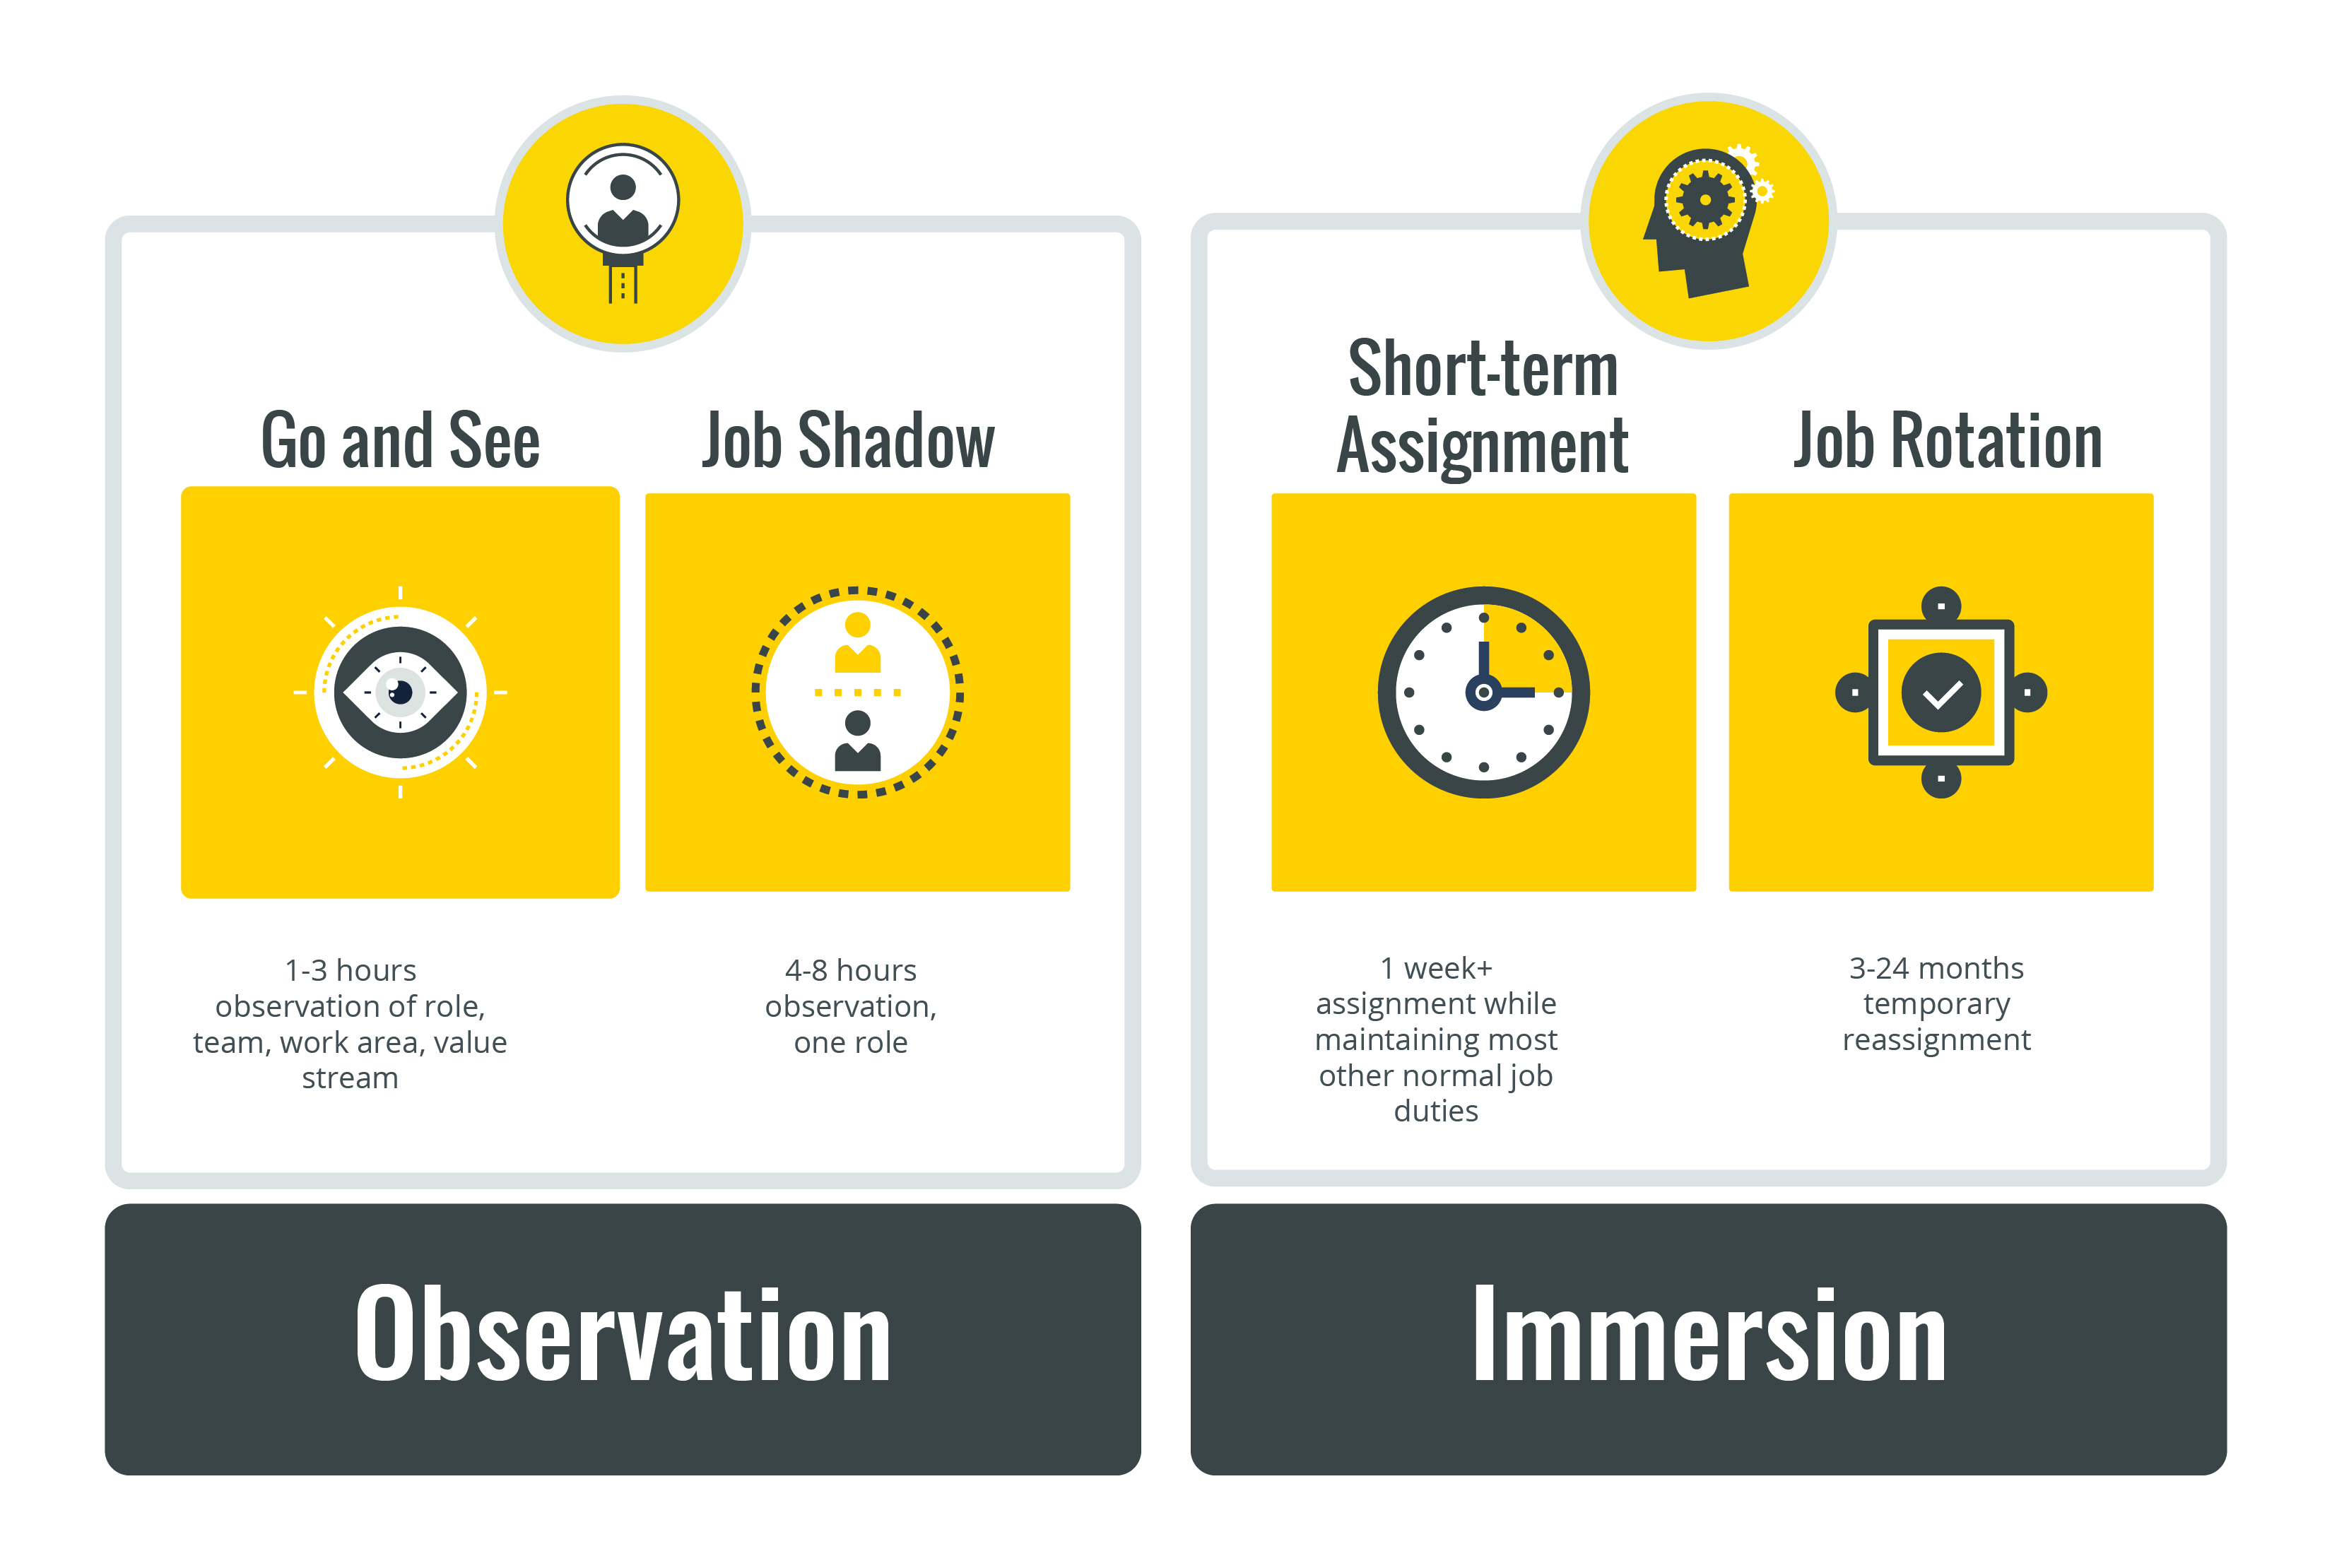 Observation: Go and See or Job Shadow; Immersion: Short-term Assignment or Job Rotation